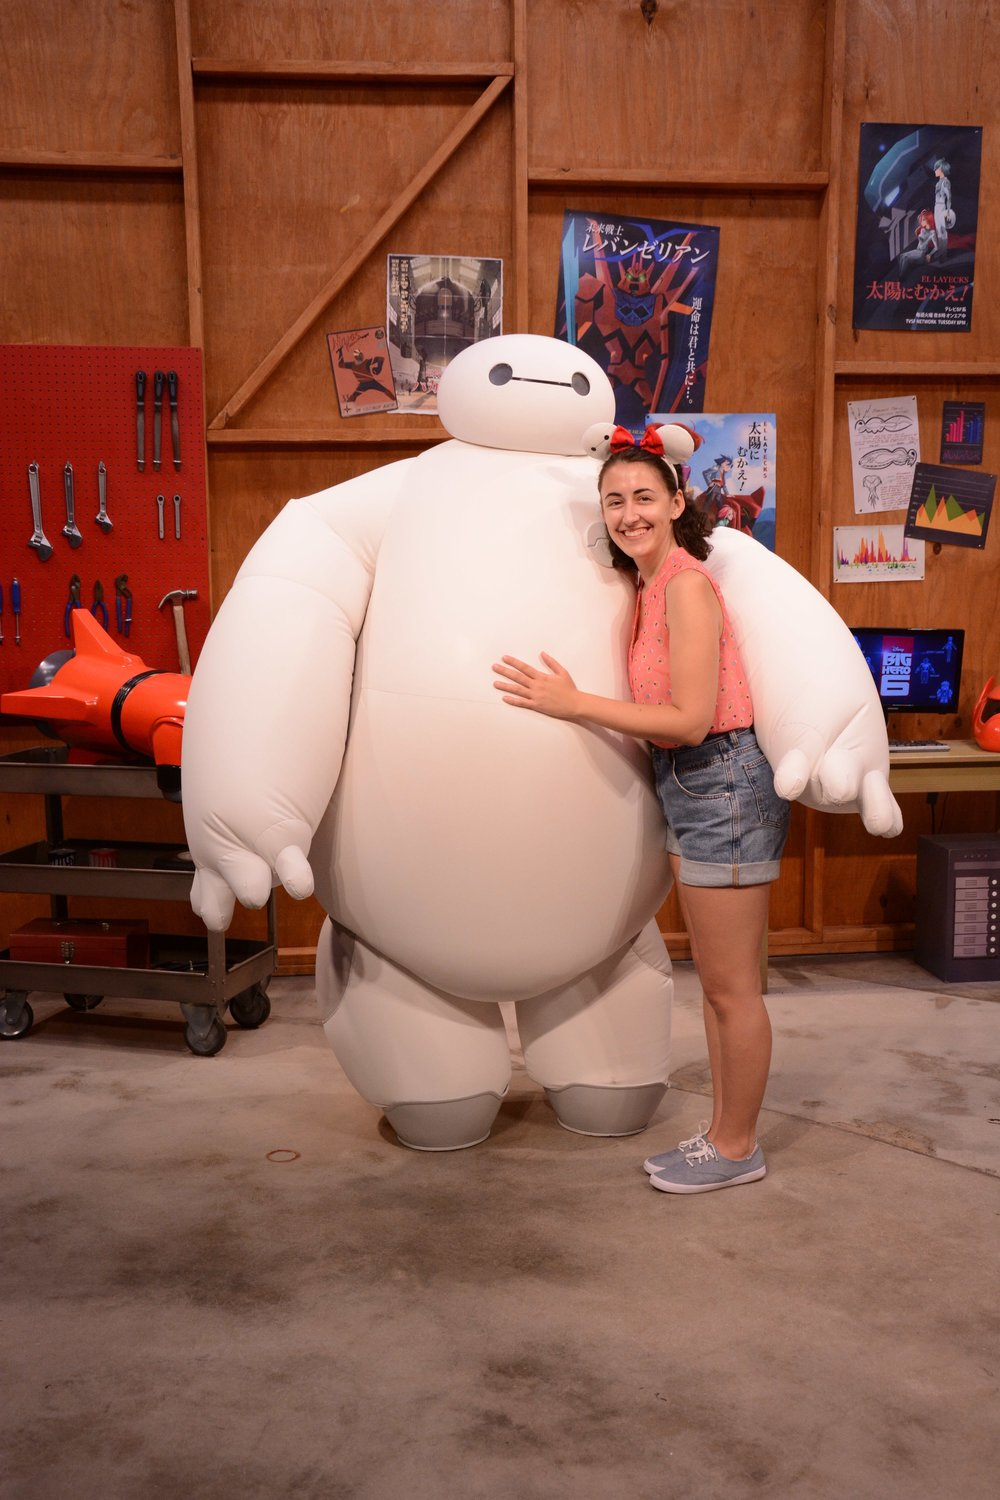 Another great part of the character meet and greet spots are the rooms that the characters are in. For example, Baymax is in Hero's workshop. They really make great backdrops for your photos!